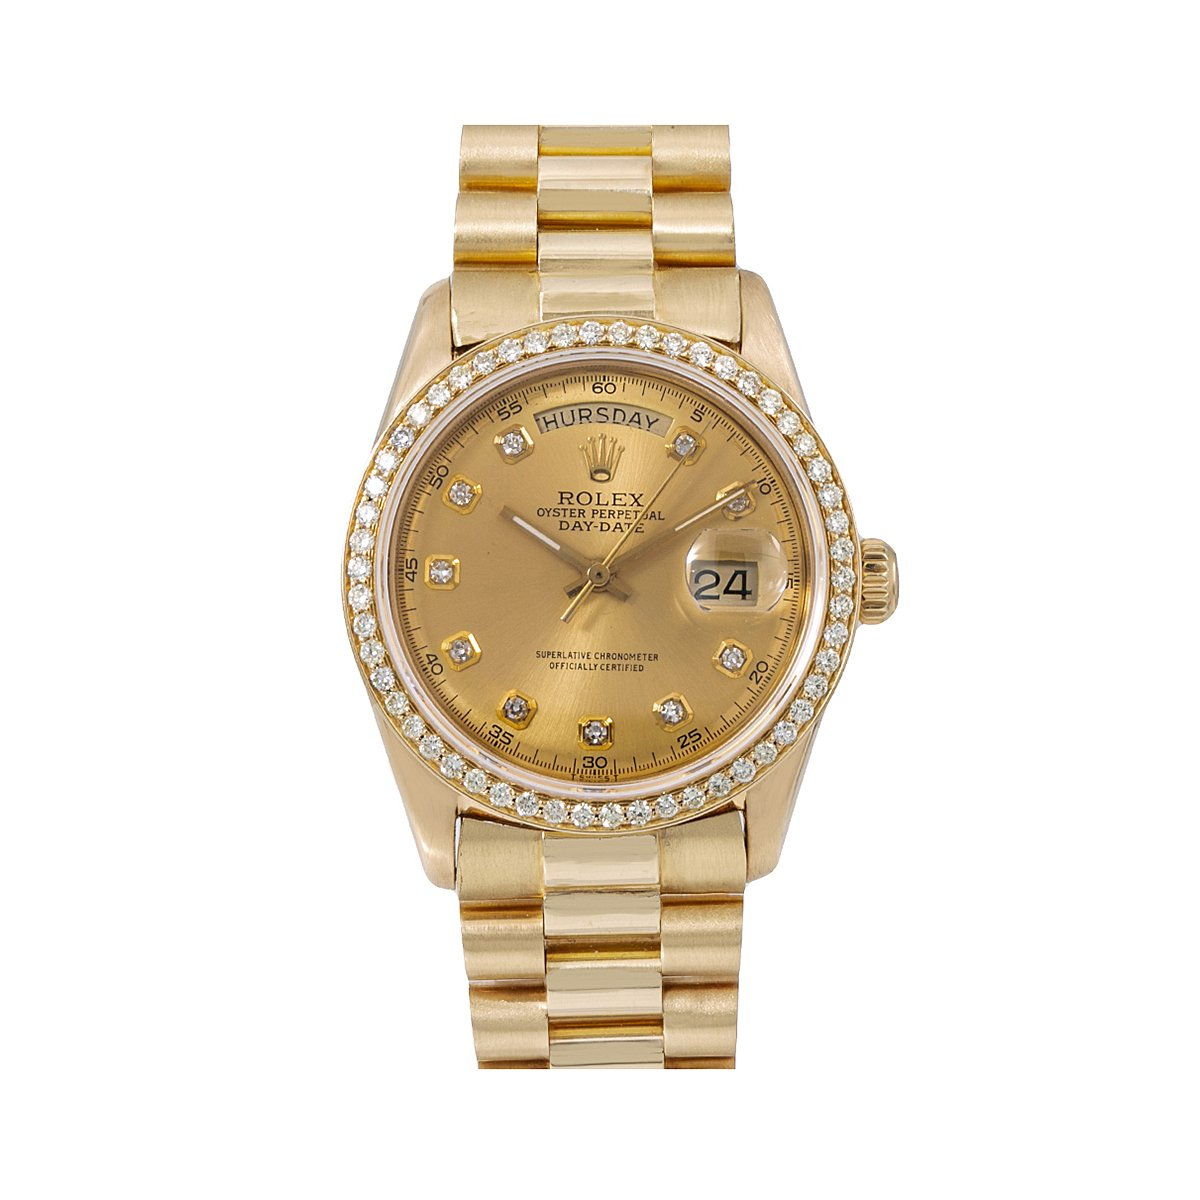 Rolex Day-Date Diamond Watch, 1803 36mm, Champagne Diamond Dial With 1.20 CT Diamonds